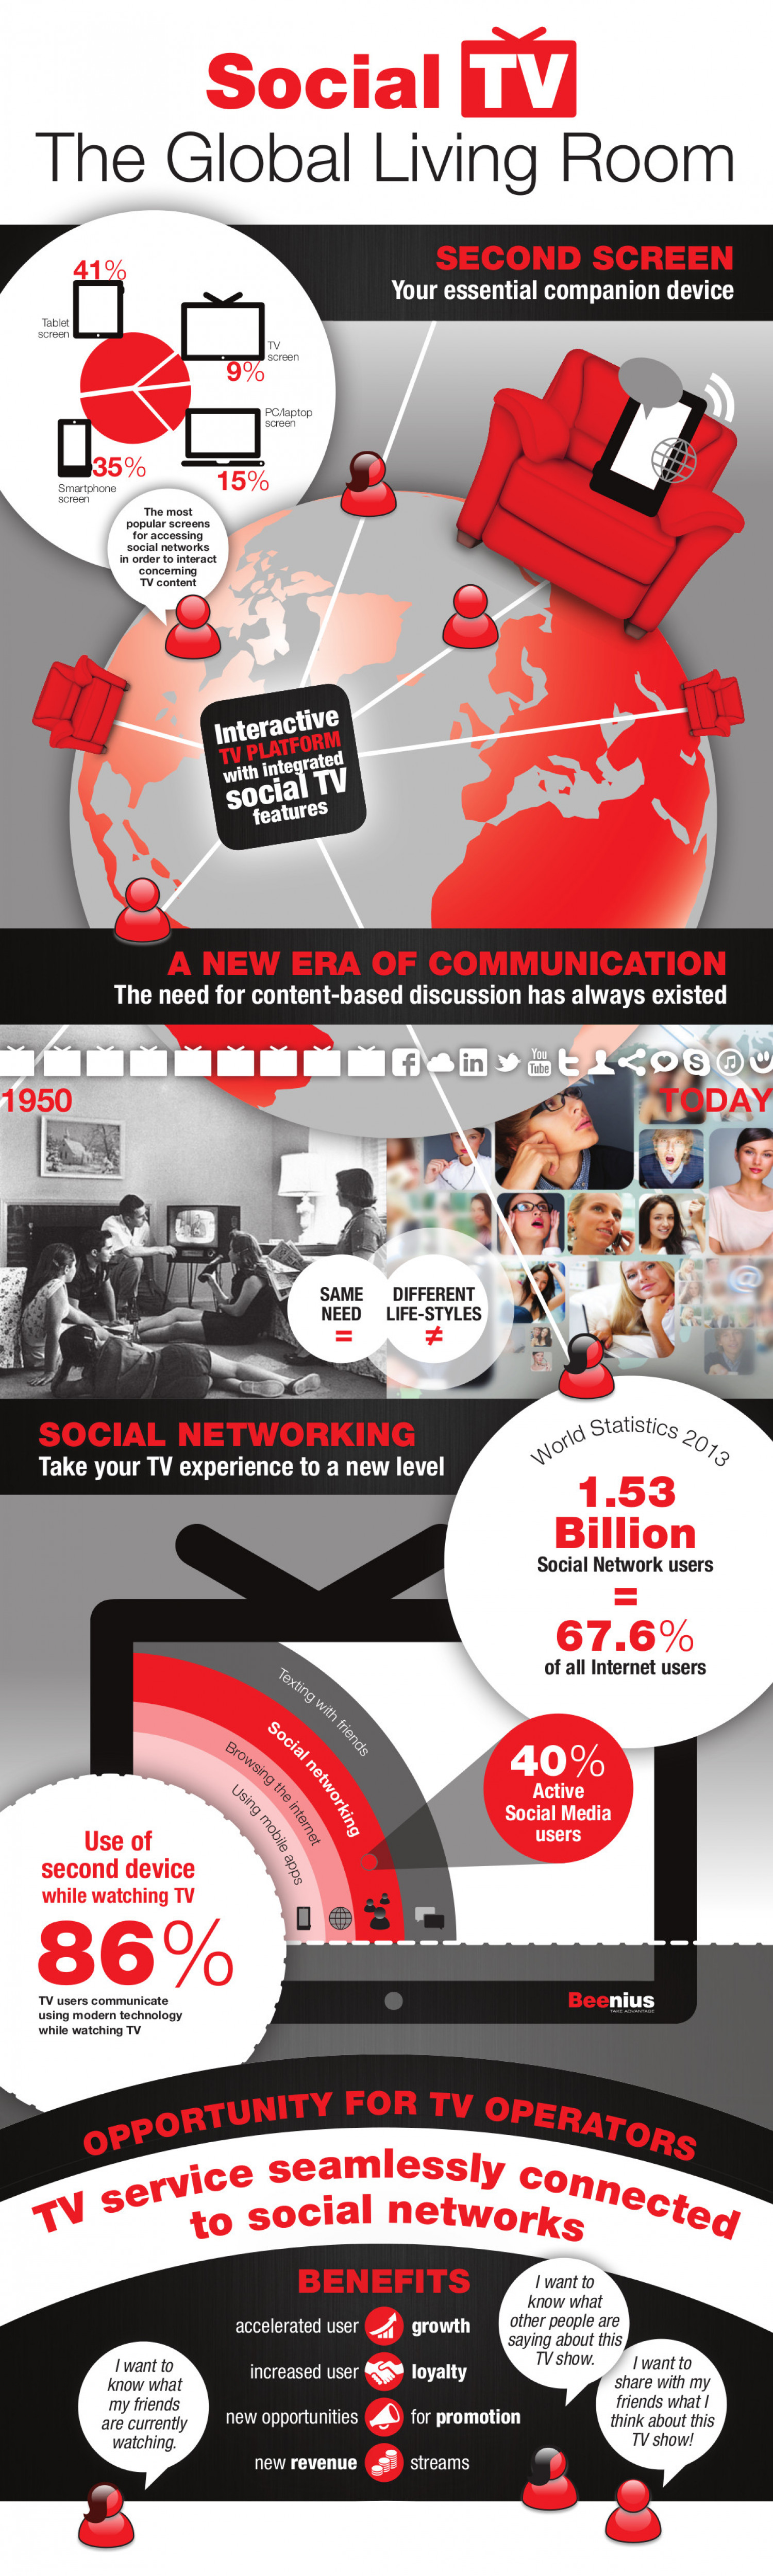 Social TV: The Global Living Room Infographic